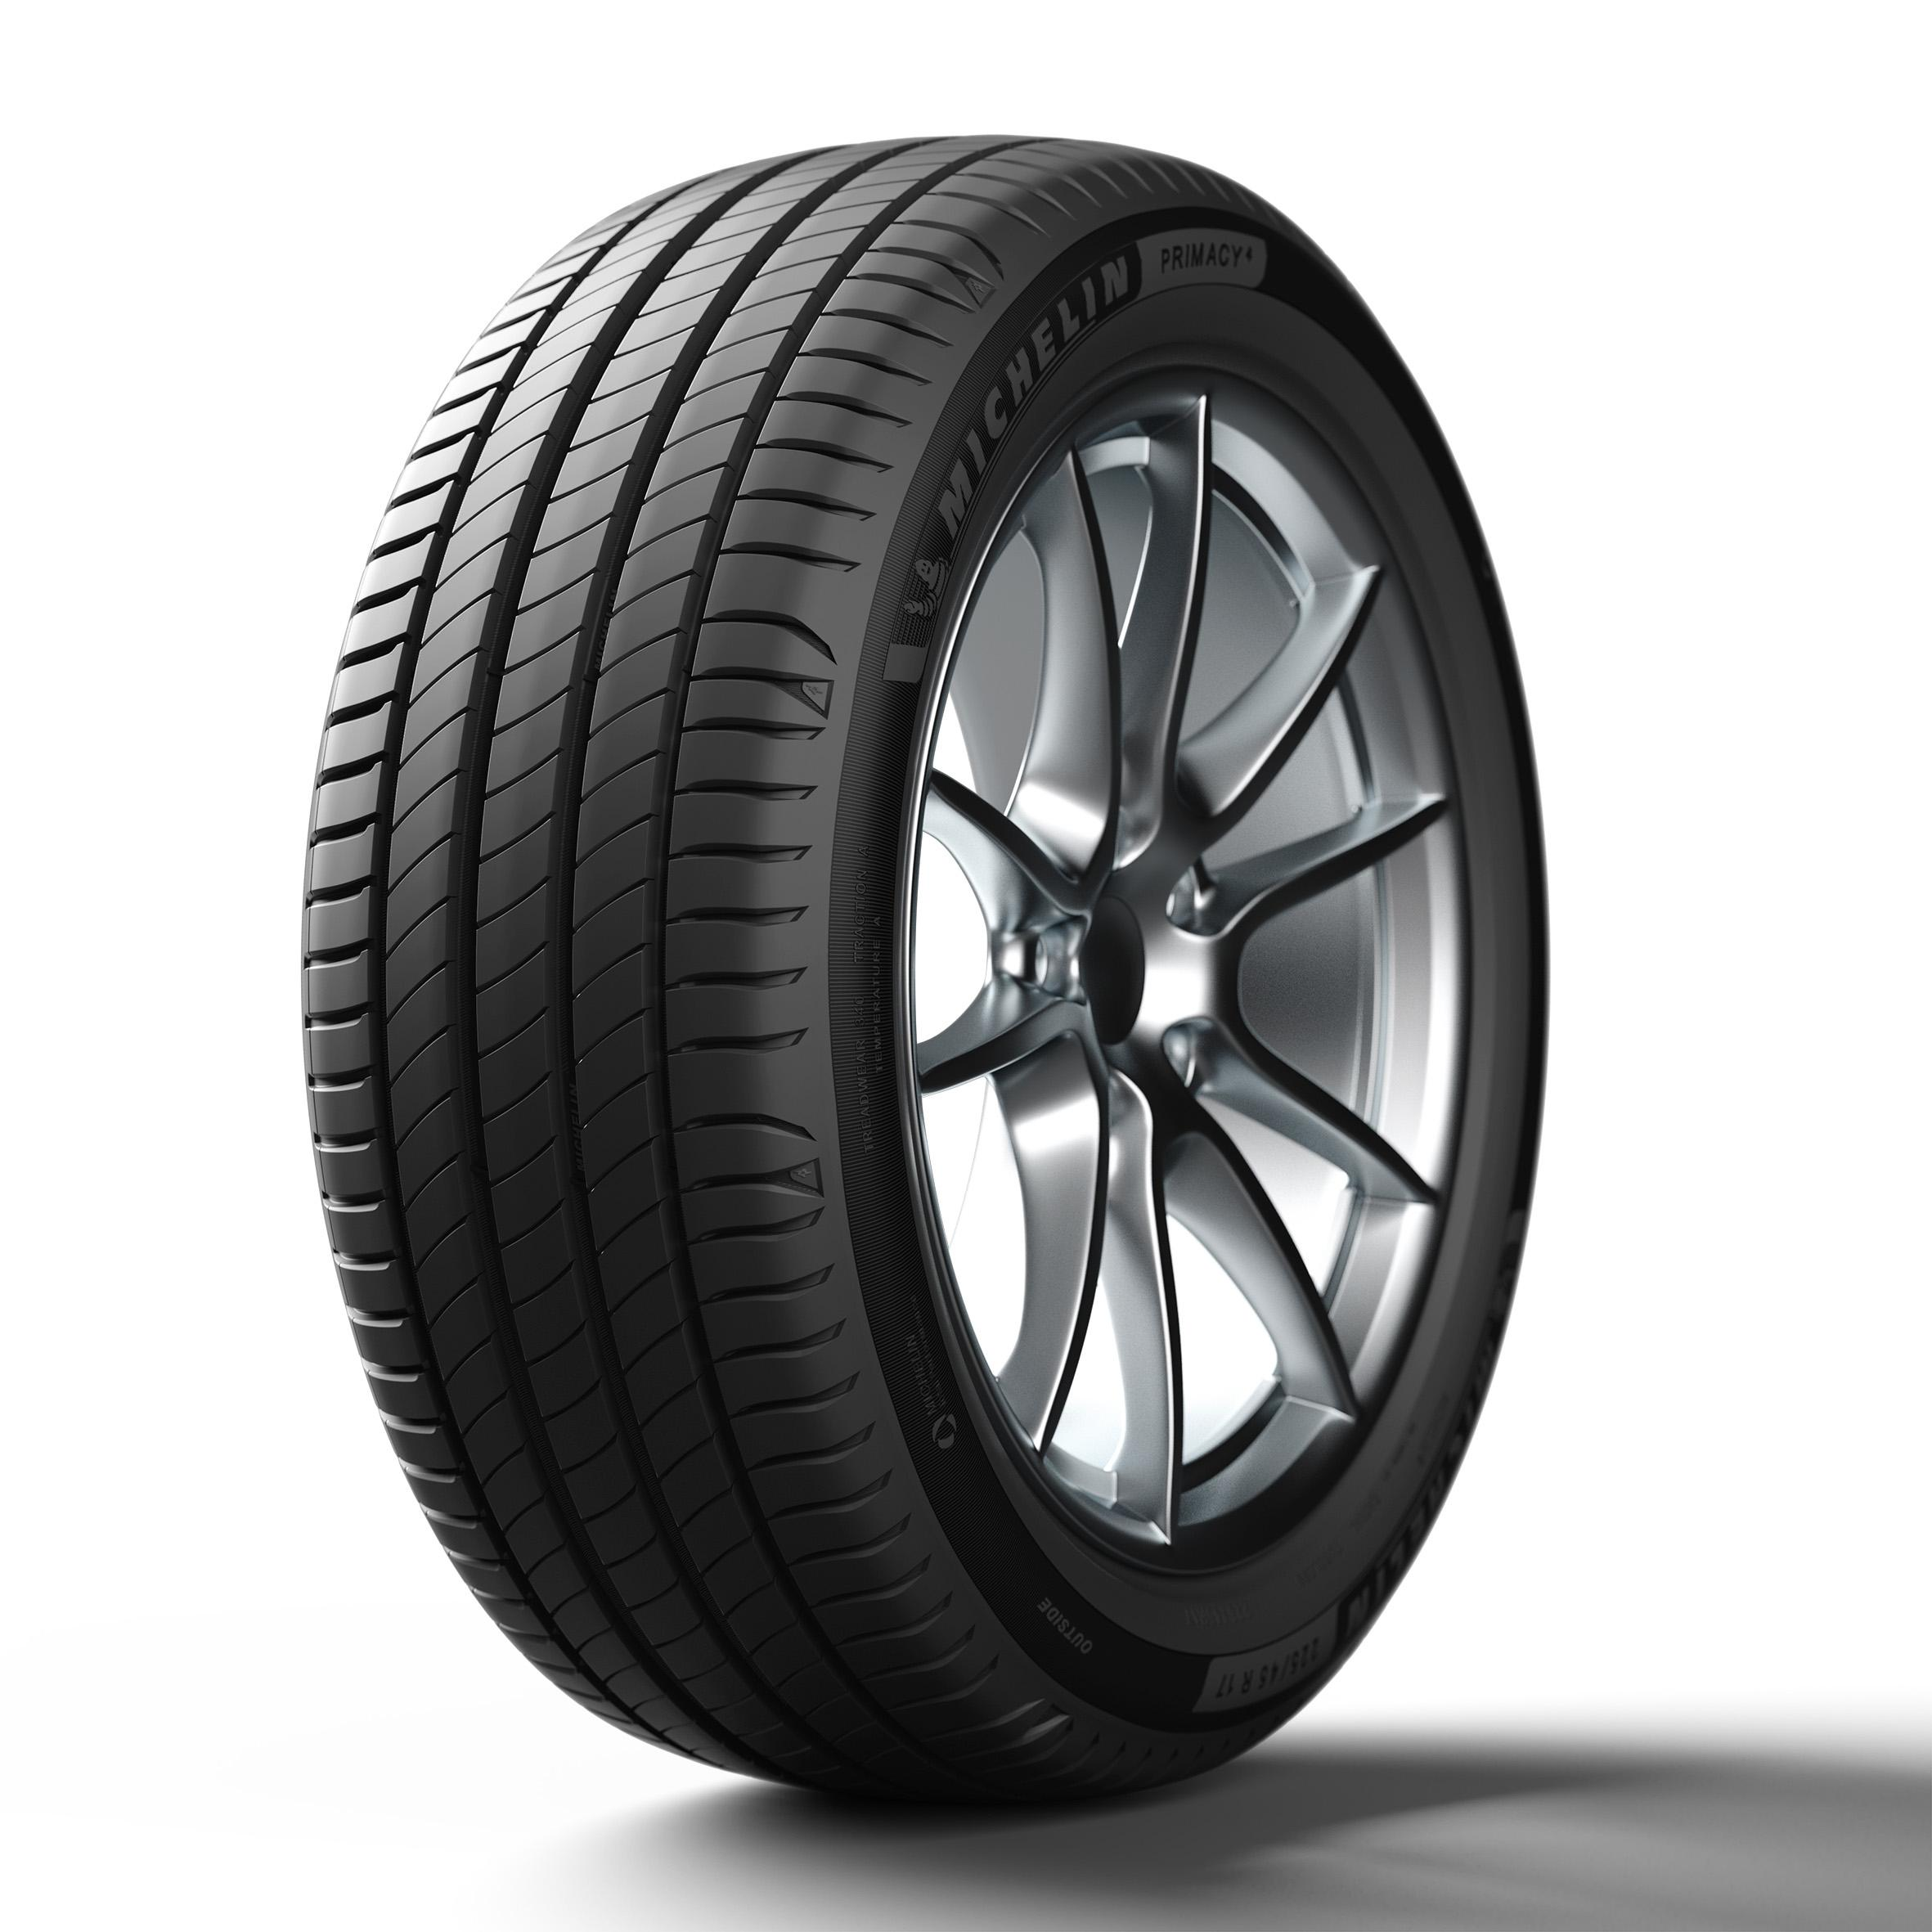 Anvelopa vara MICHELIN PRIMACY 4 185/65 RR15 92T